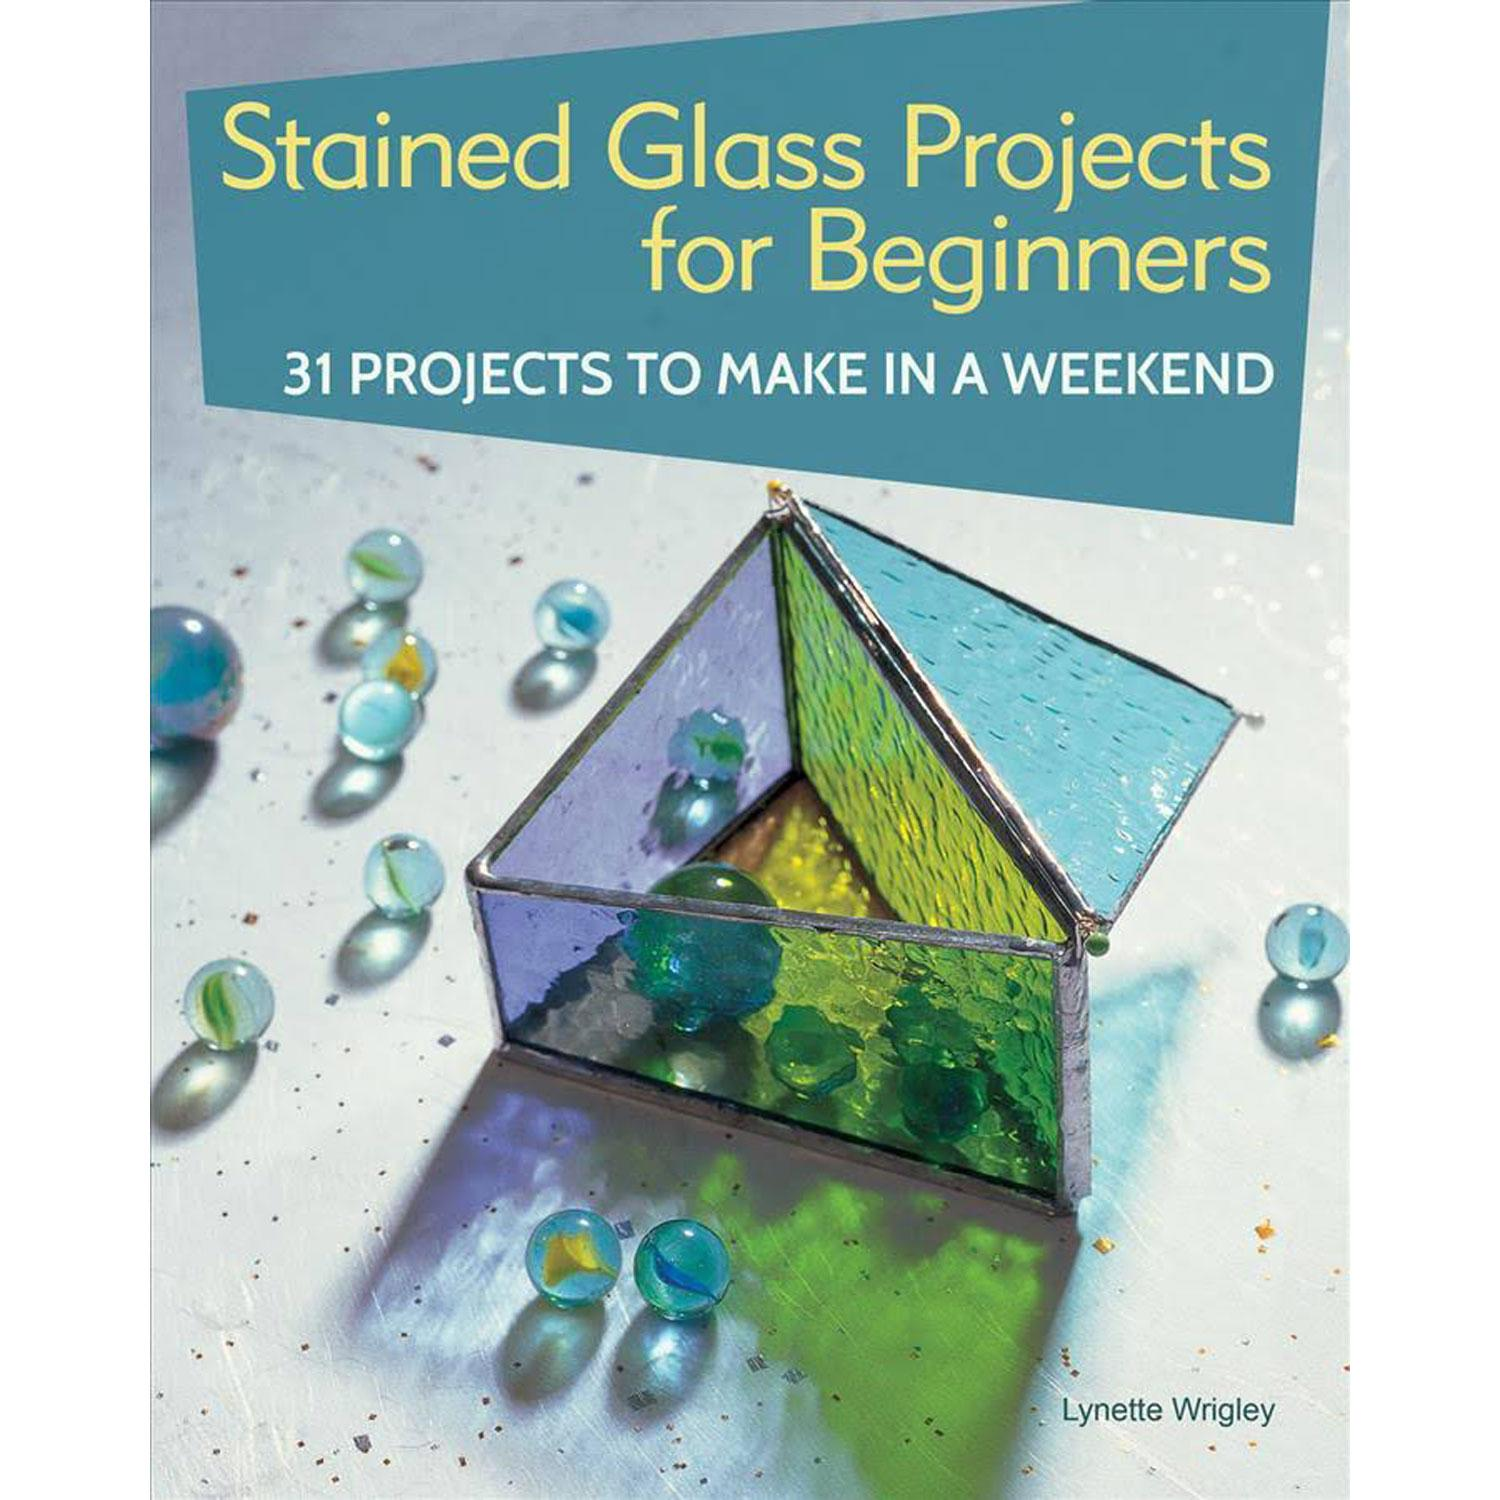 Stained Glass Projects for Beginners - 31 Projects